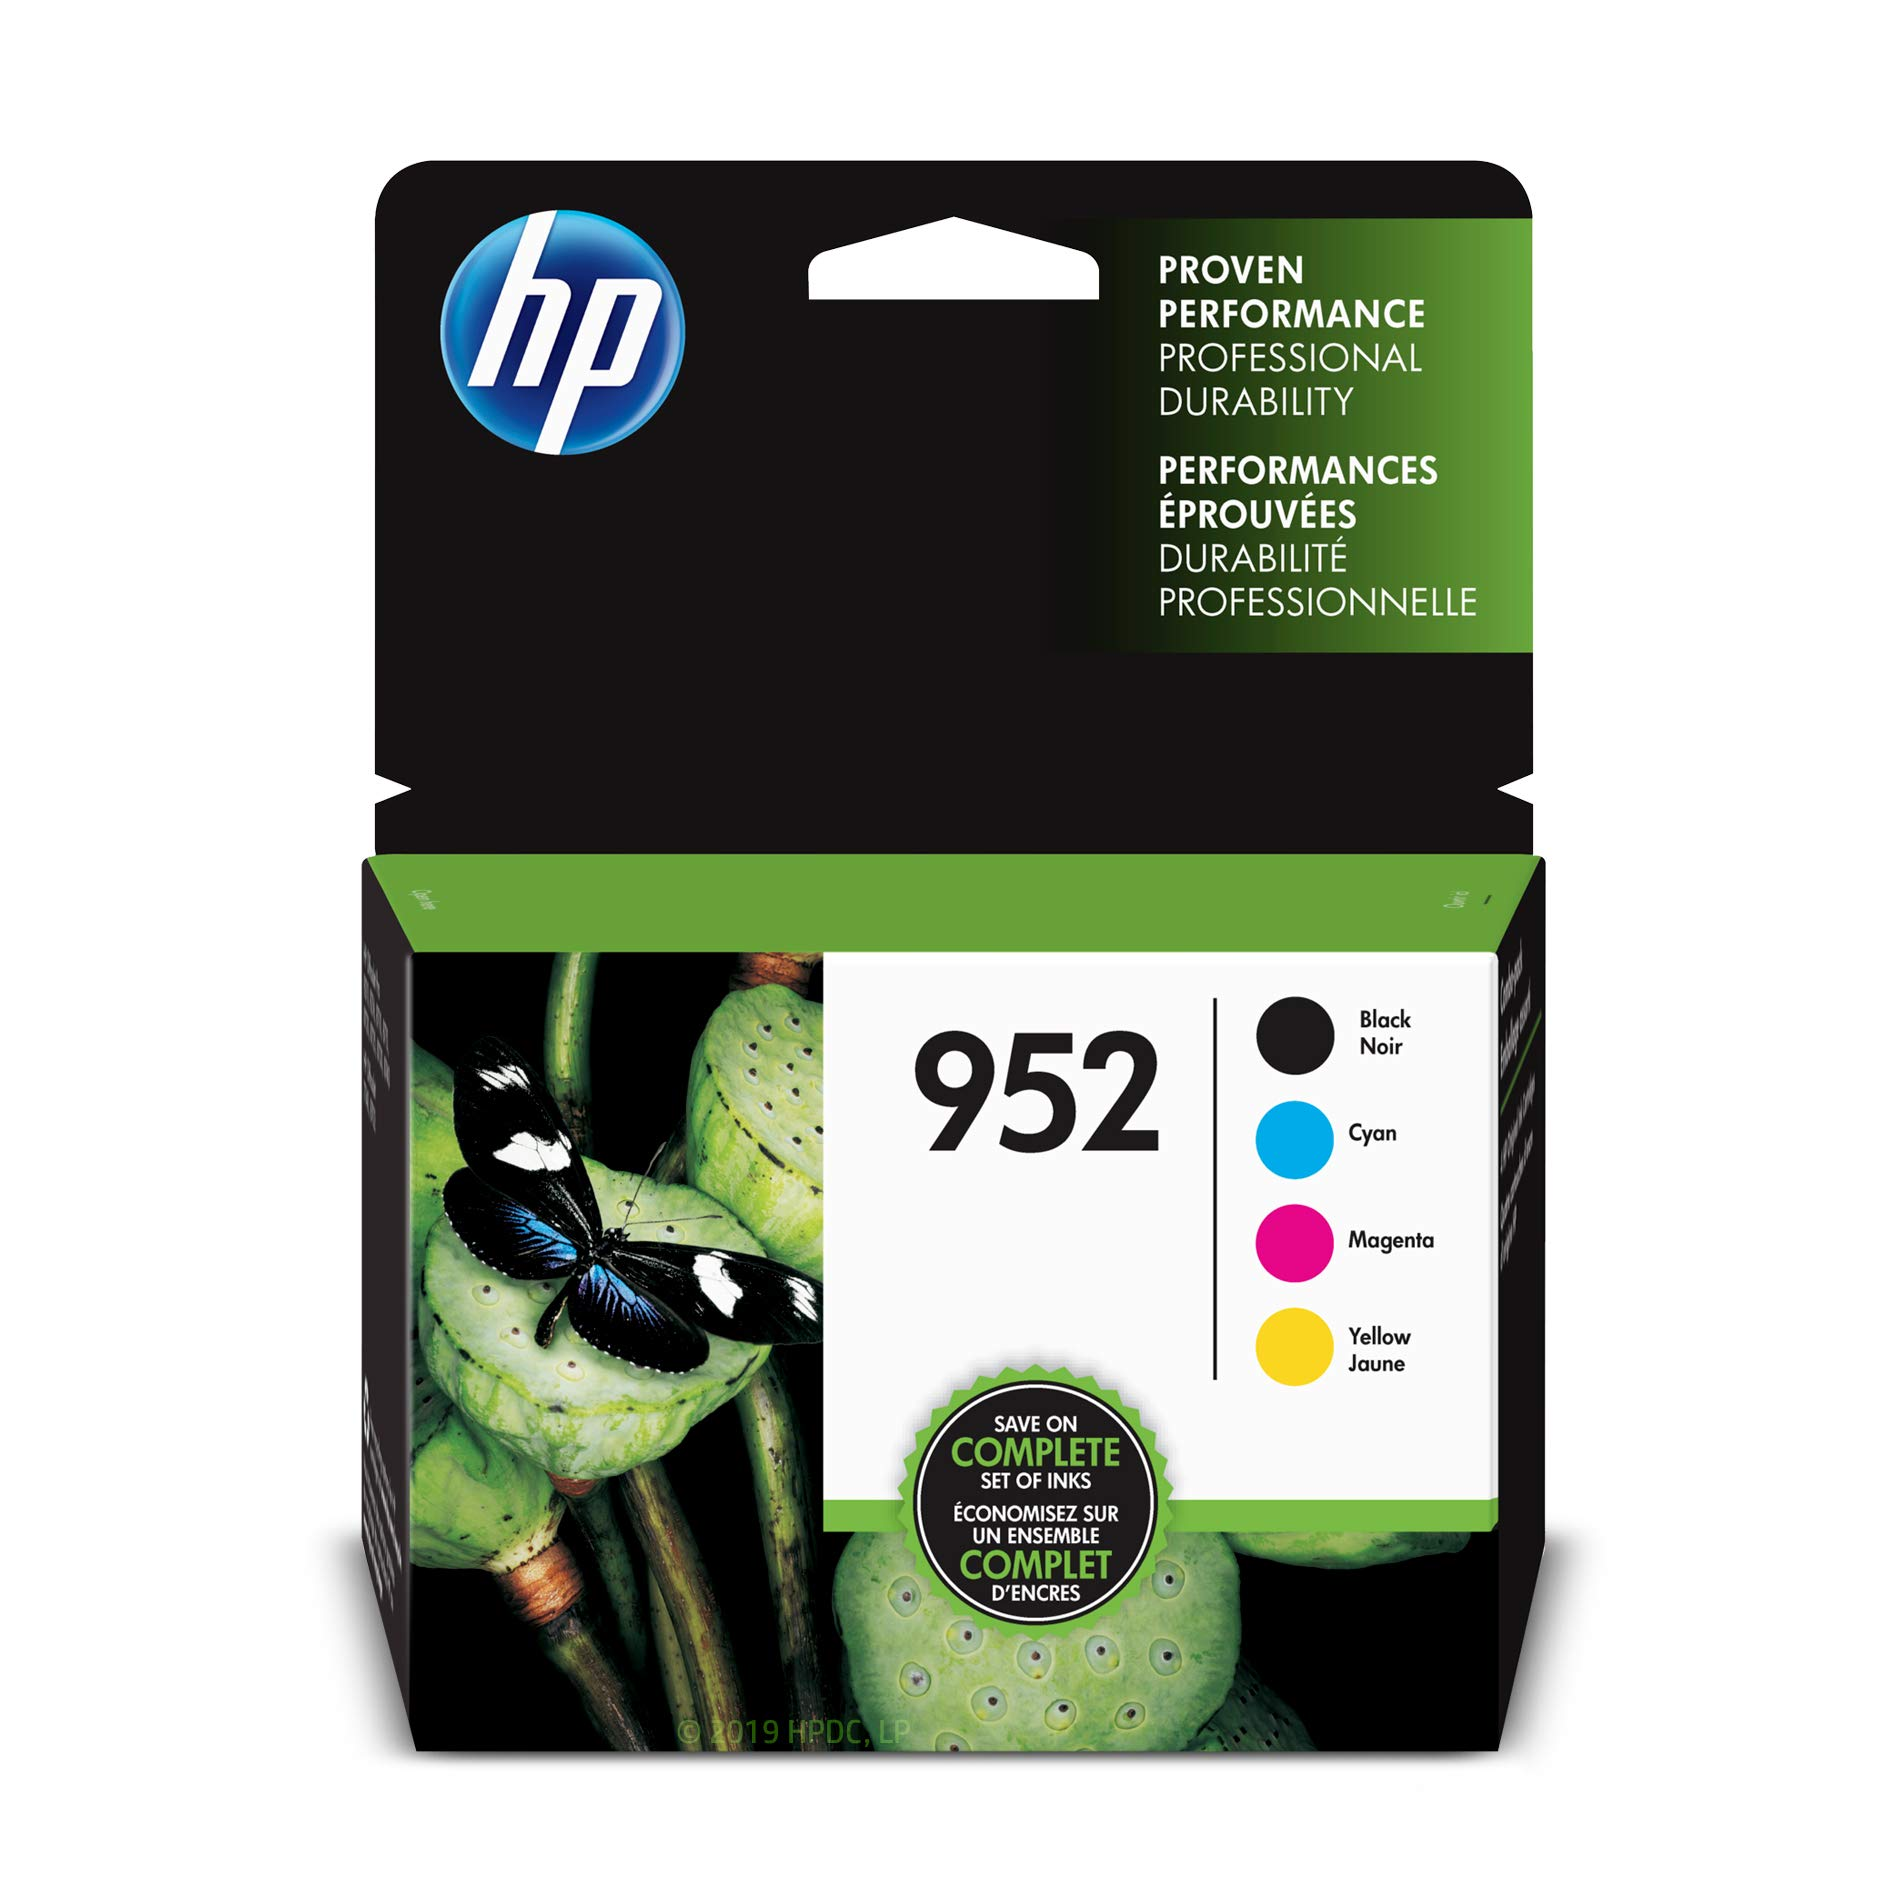 HP 952 | 4 Ink Cartridges | Black, Cyan, Magenta, Yellow | F6U15AN, L0S49AN, L0S52AN, L0S55AN by HP